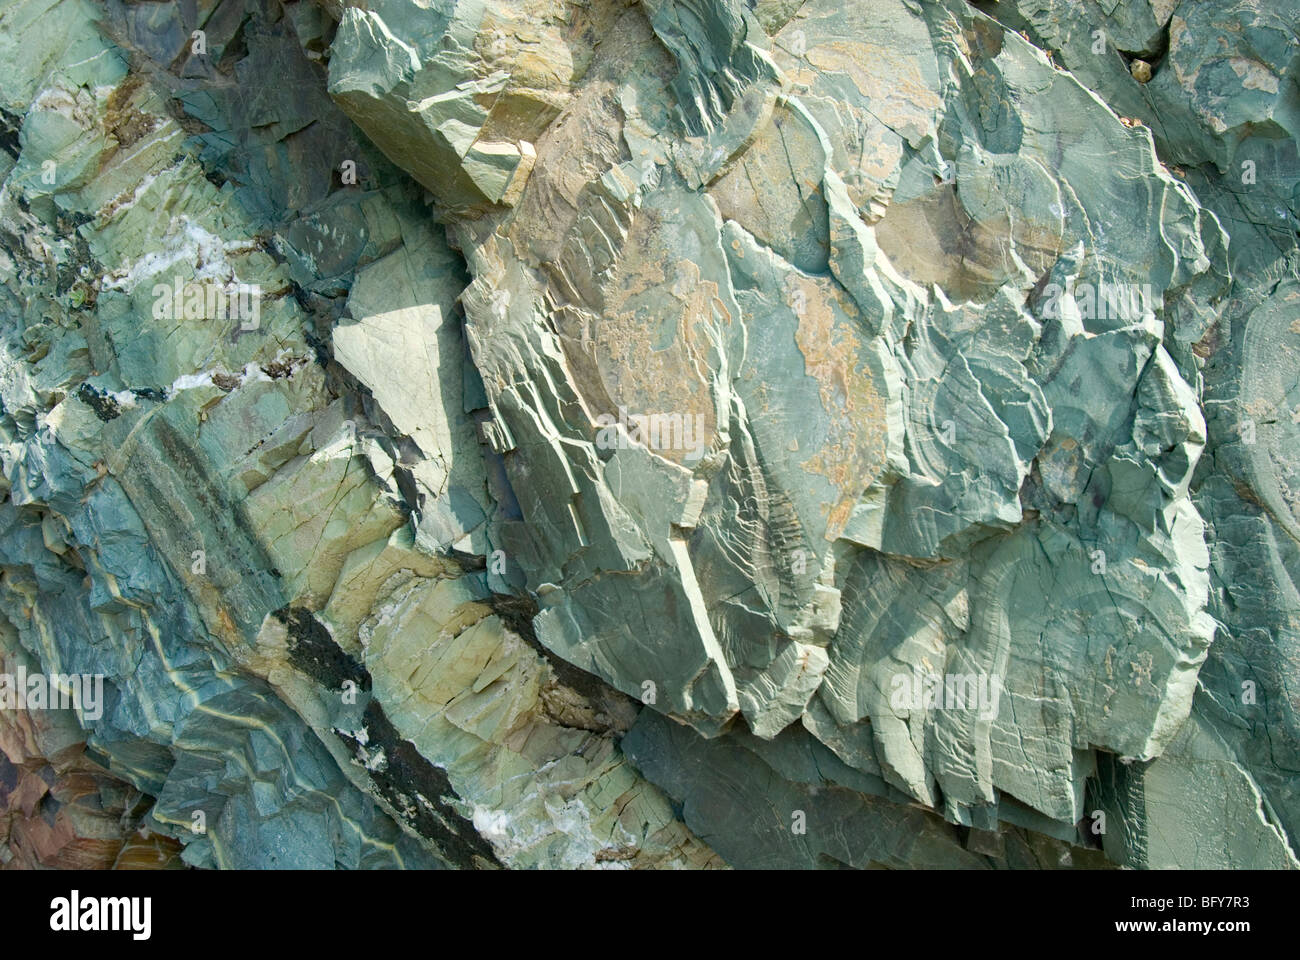 Pumpellyite and chlorite-rich strata alternate with epidote-rich bands, Avacha Bay, Kamchatka, Russia - Stock Image